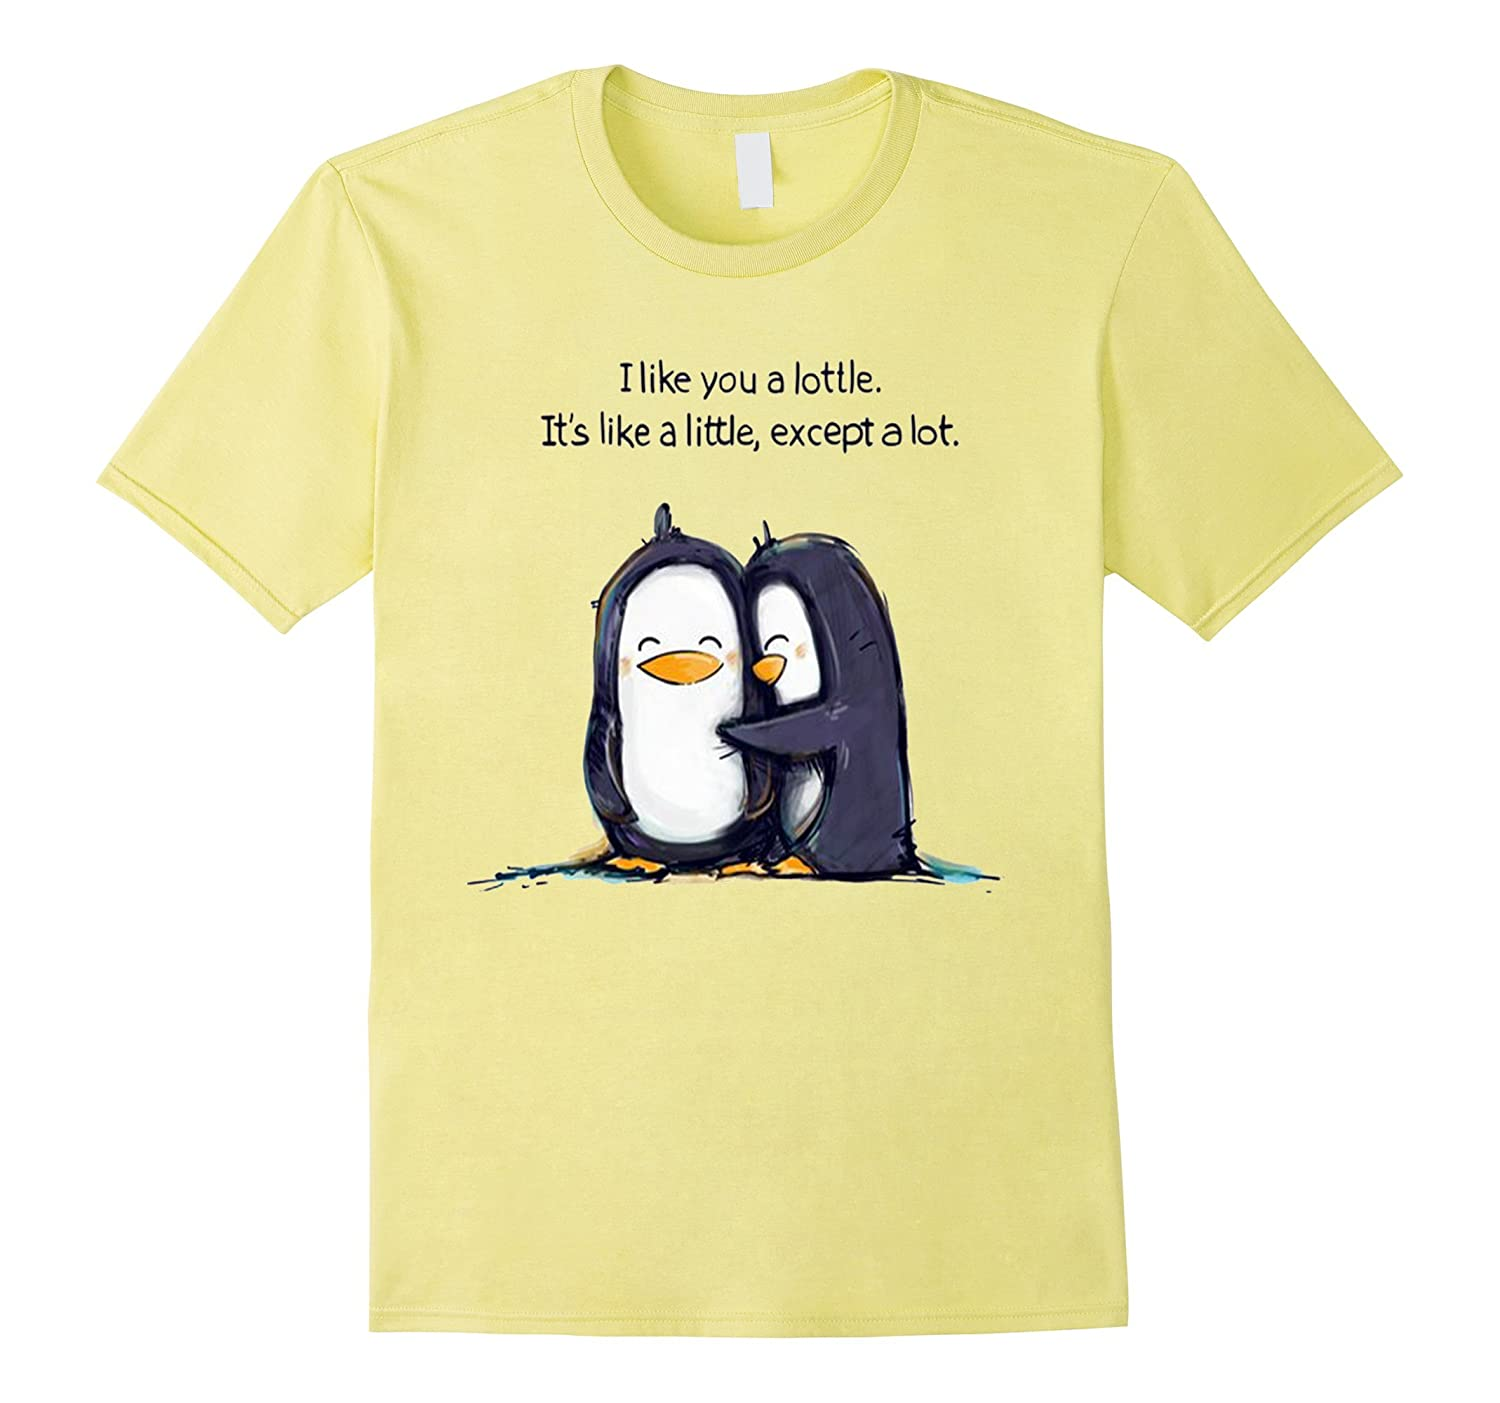 I Like You A Lottle, It's Like a Little Except A Lot T Shirt